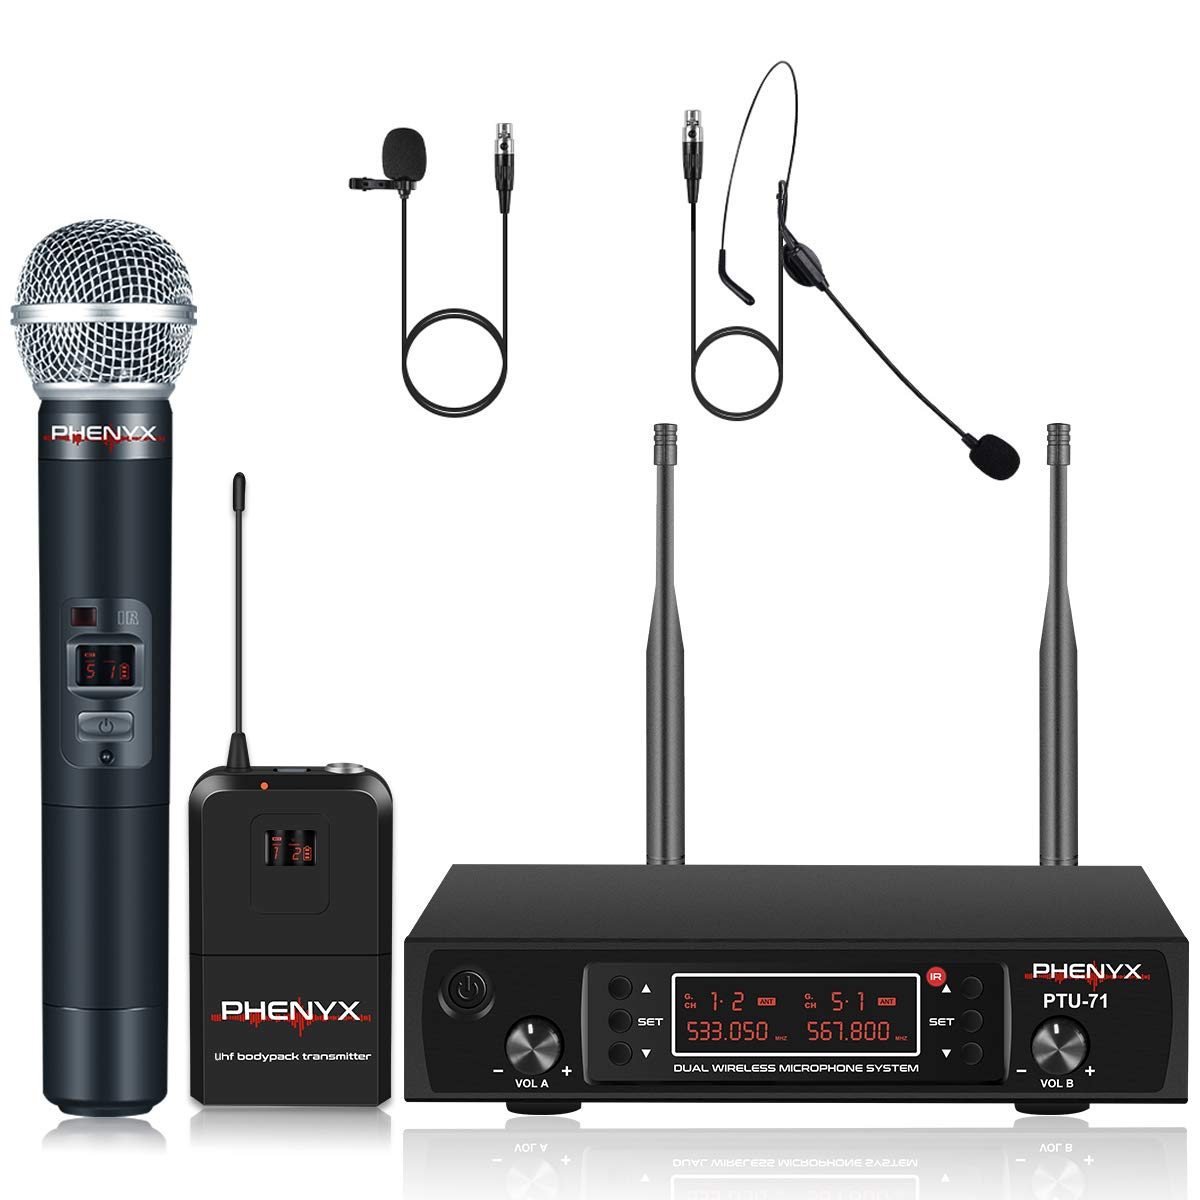 UHF Wireless Microphone System, Phenyx Pro Dual Cordless Mic Set with Handheld/Bodypack/Headset/Lapel Mics, 2x200 Channels, Long Distance Operation, Ideal for DJ, Church, Events (PTU-71B) by Phenyx Pro